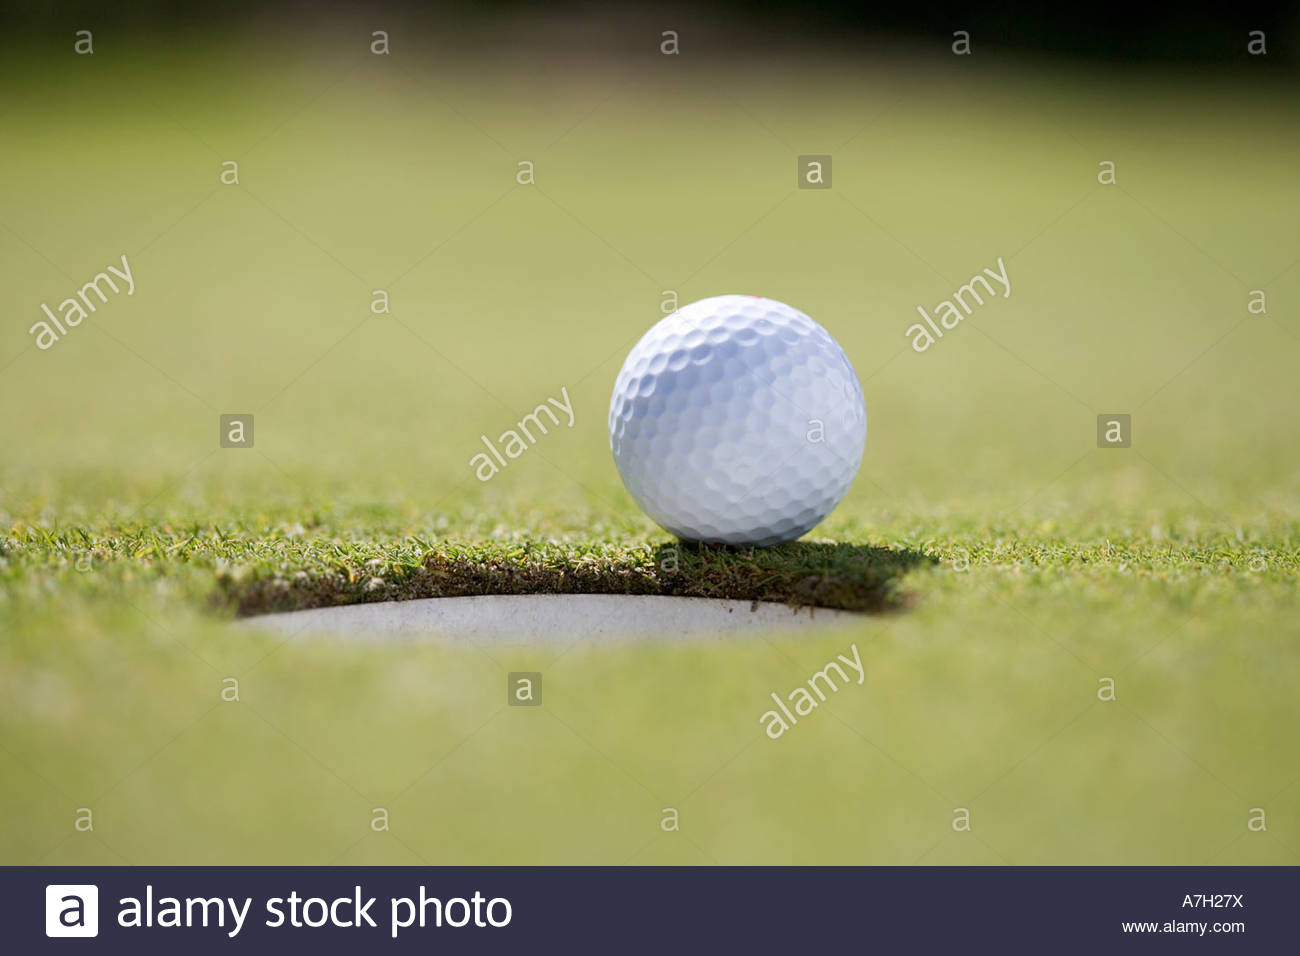 Close-up of a golf ball on the edge of a hole - Stock Image